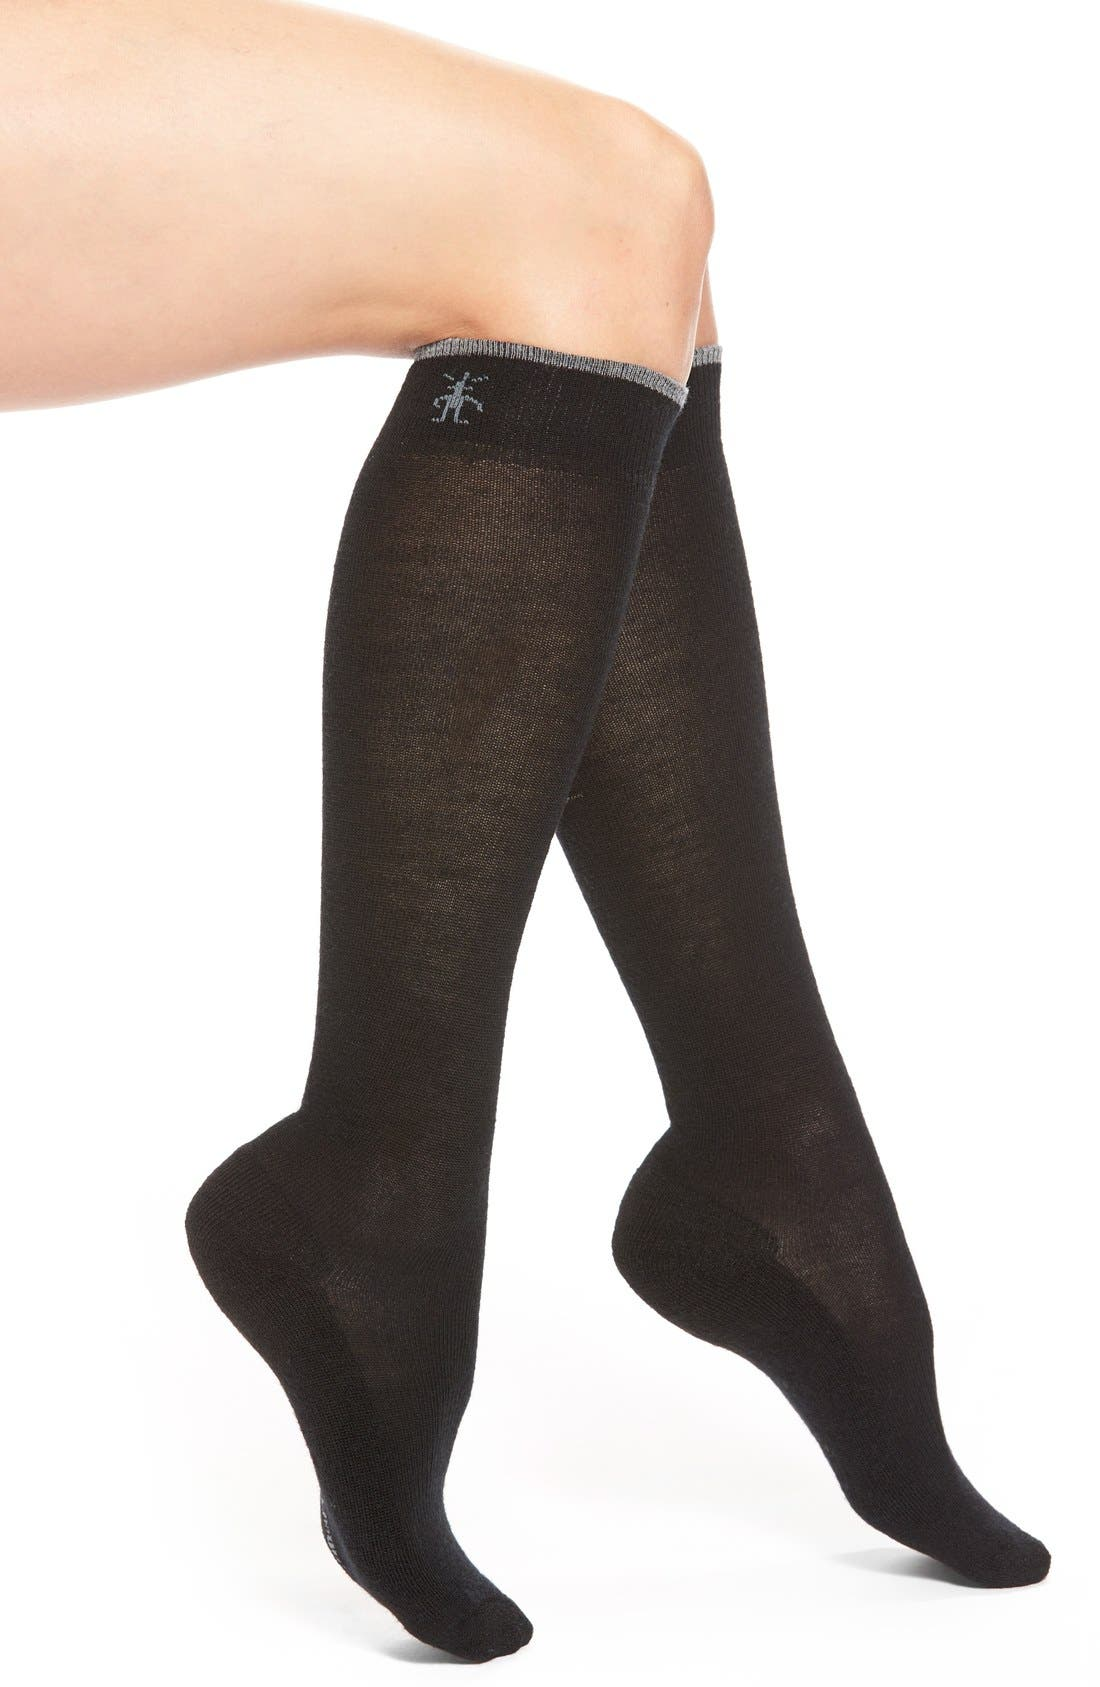 Merino Wool Blend Knee High Socks,                         Main,                         color, 001